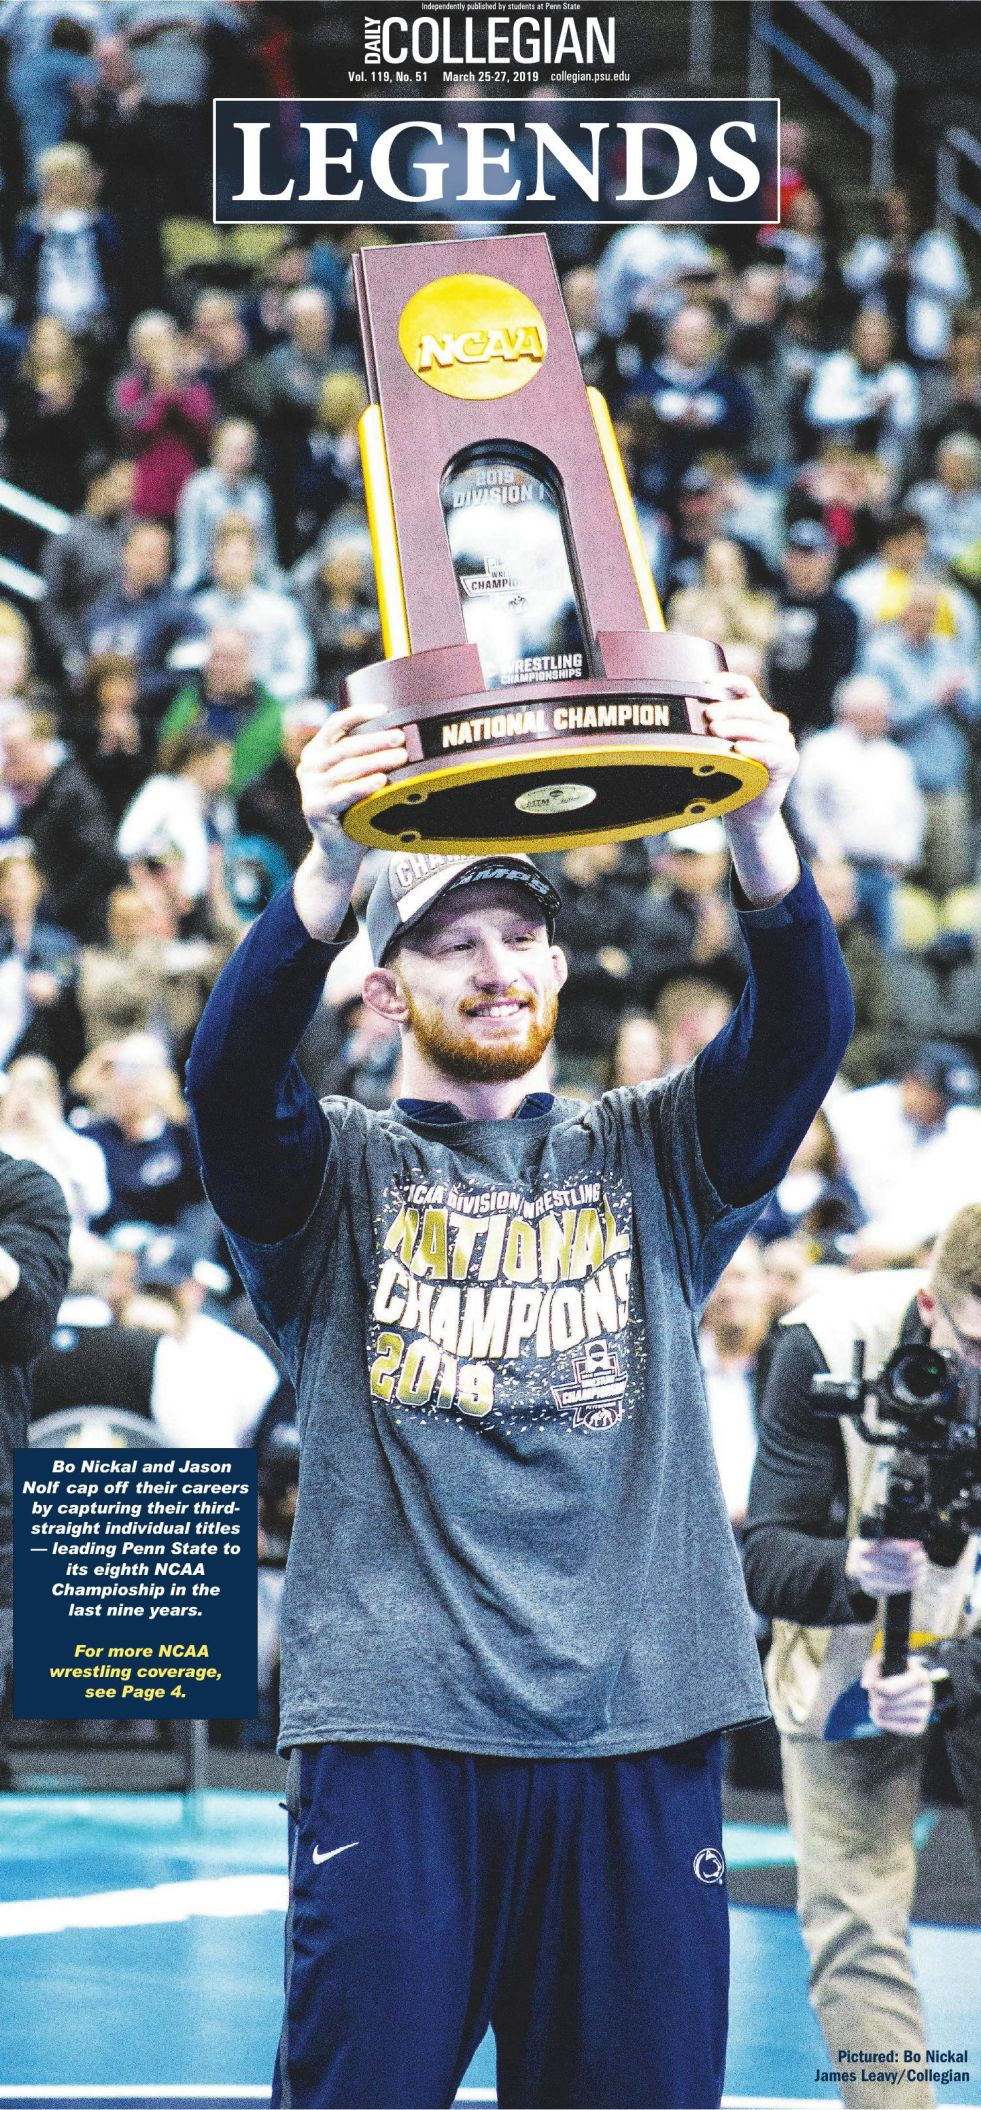 The Daily Collegian for March 25, 2019